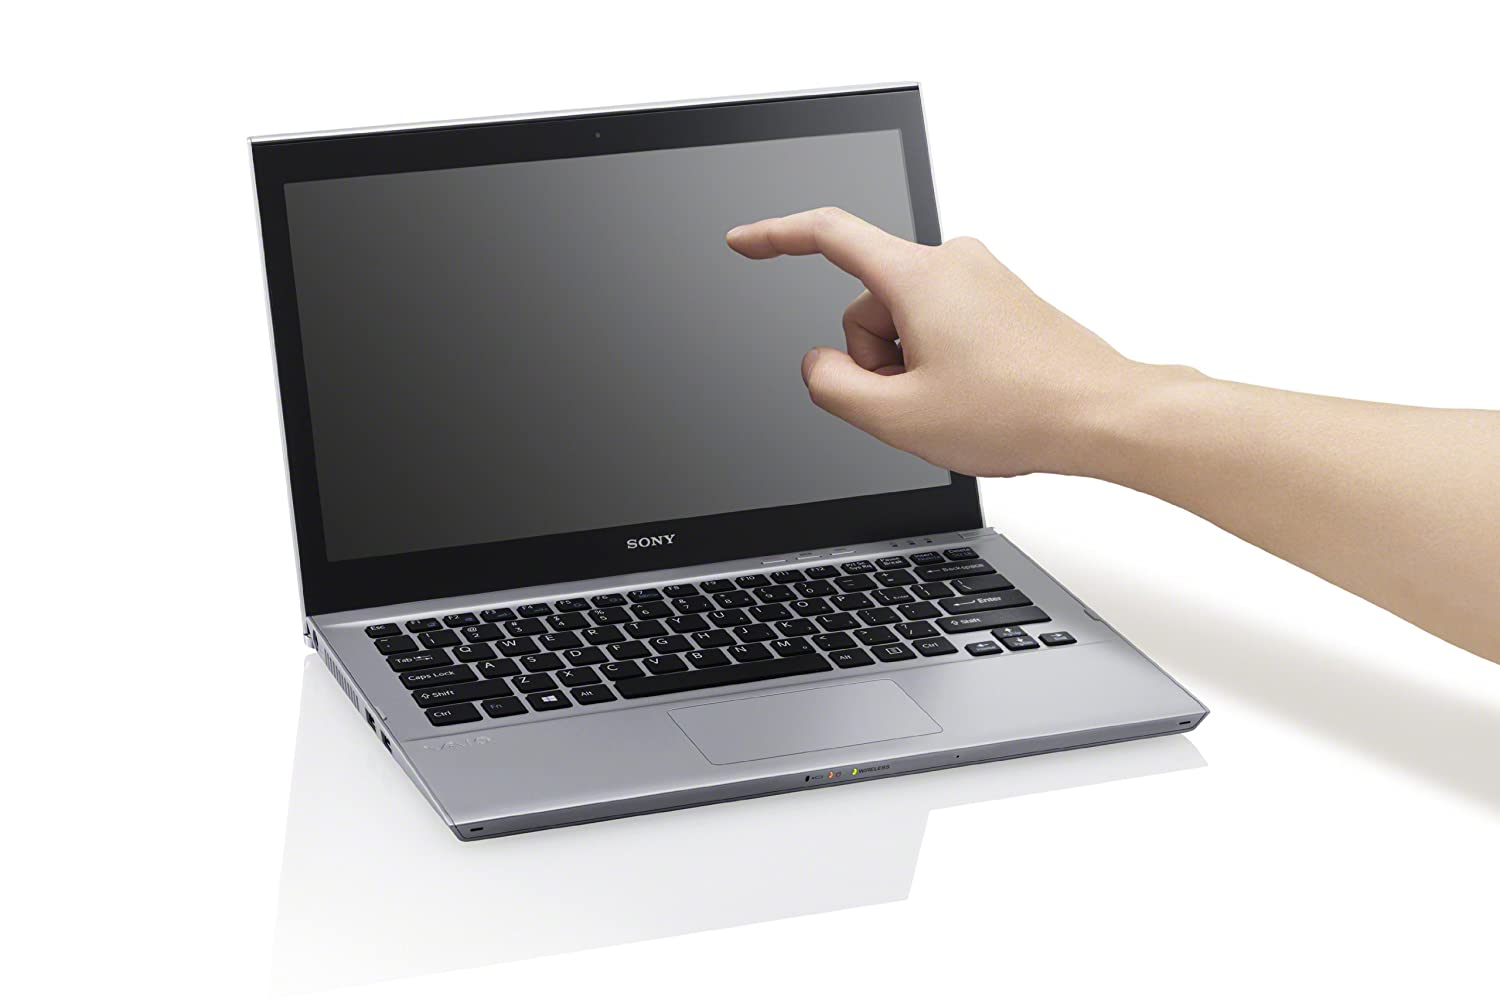 Sony vaio t13 ultrabook review the register - Amazon Com Sony Vaio T Series Svt13138cxs 13 3 Inch Touchscreen Ultrabook 2 0 Ghz Intel Core I7 3537u Processor 8gb Ddr3 256gb Ssd Windows 8 Silver